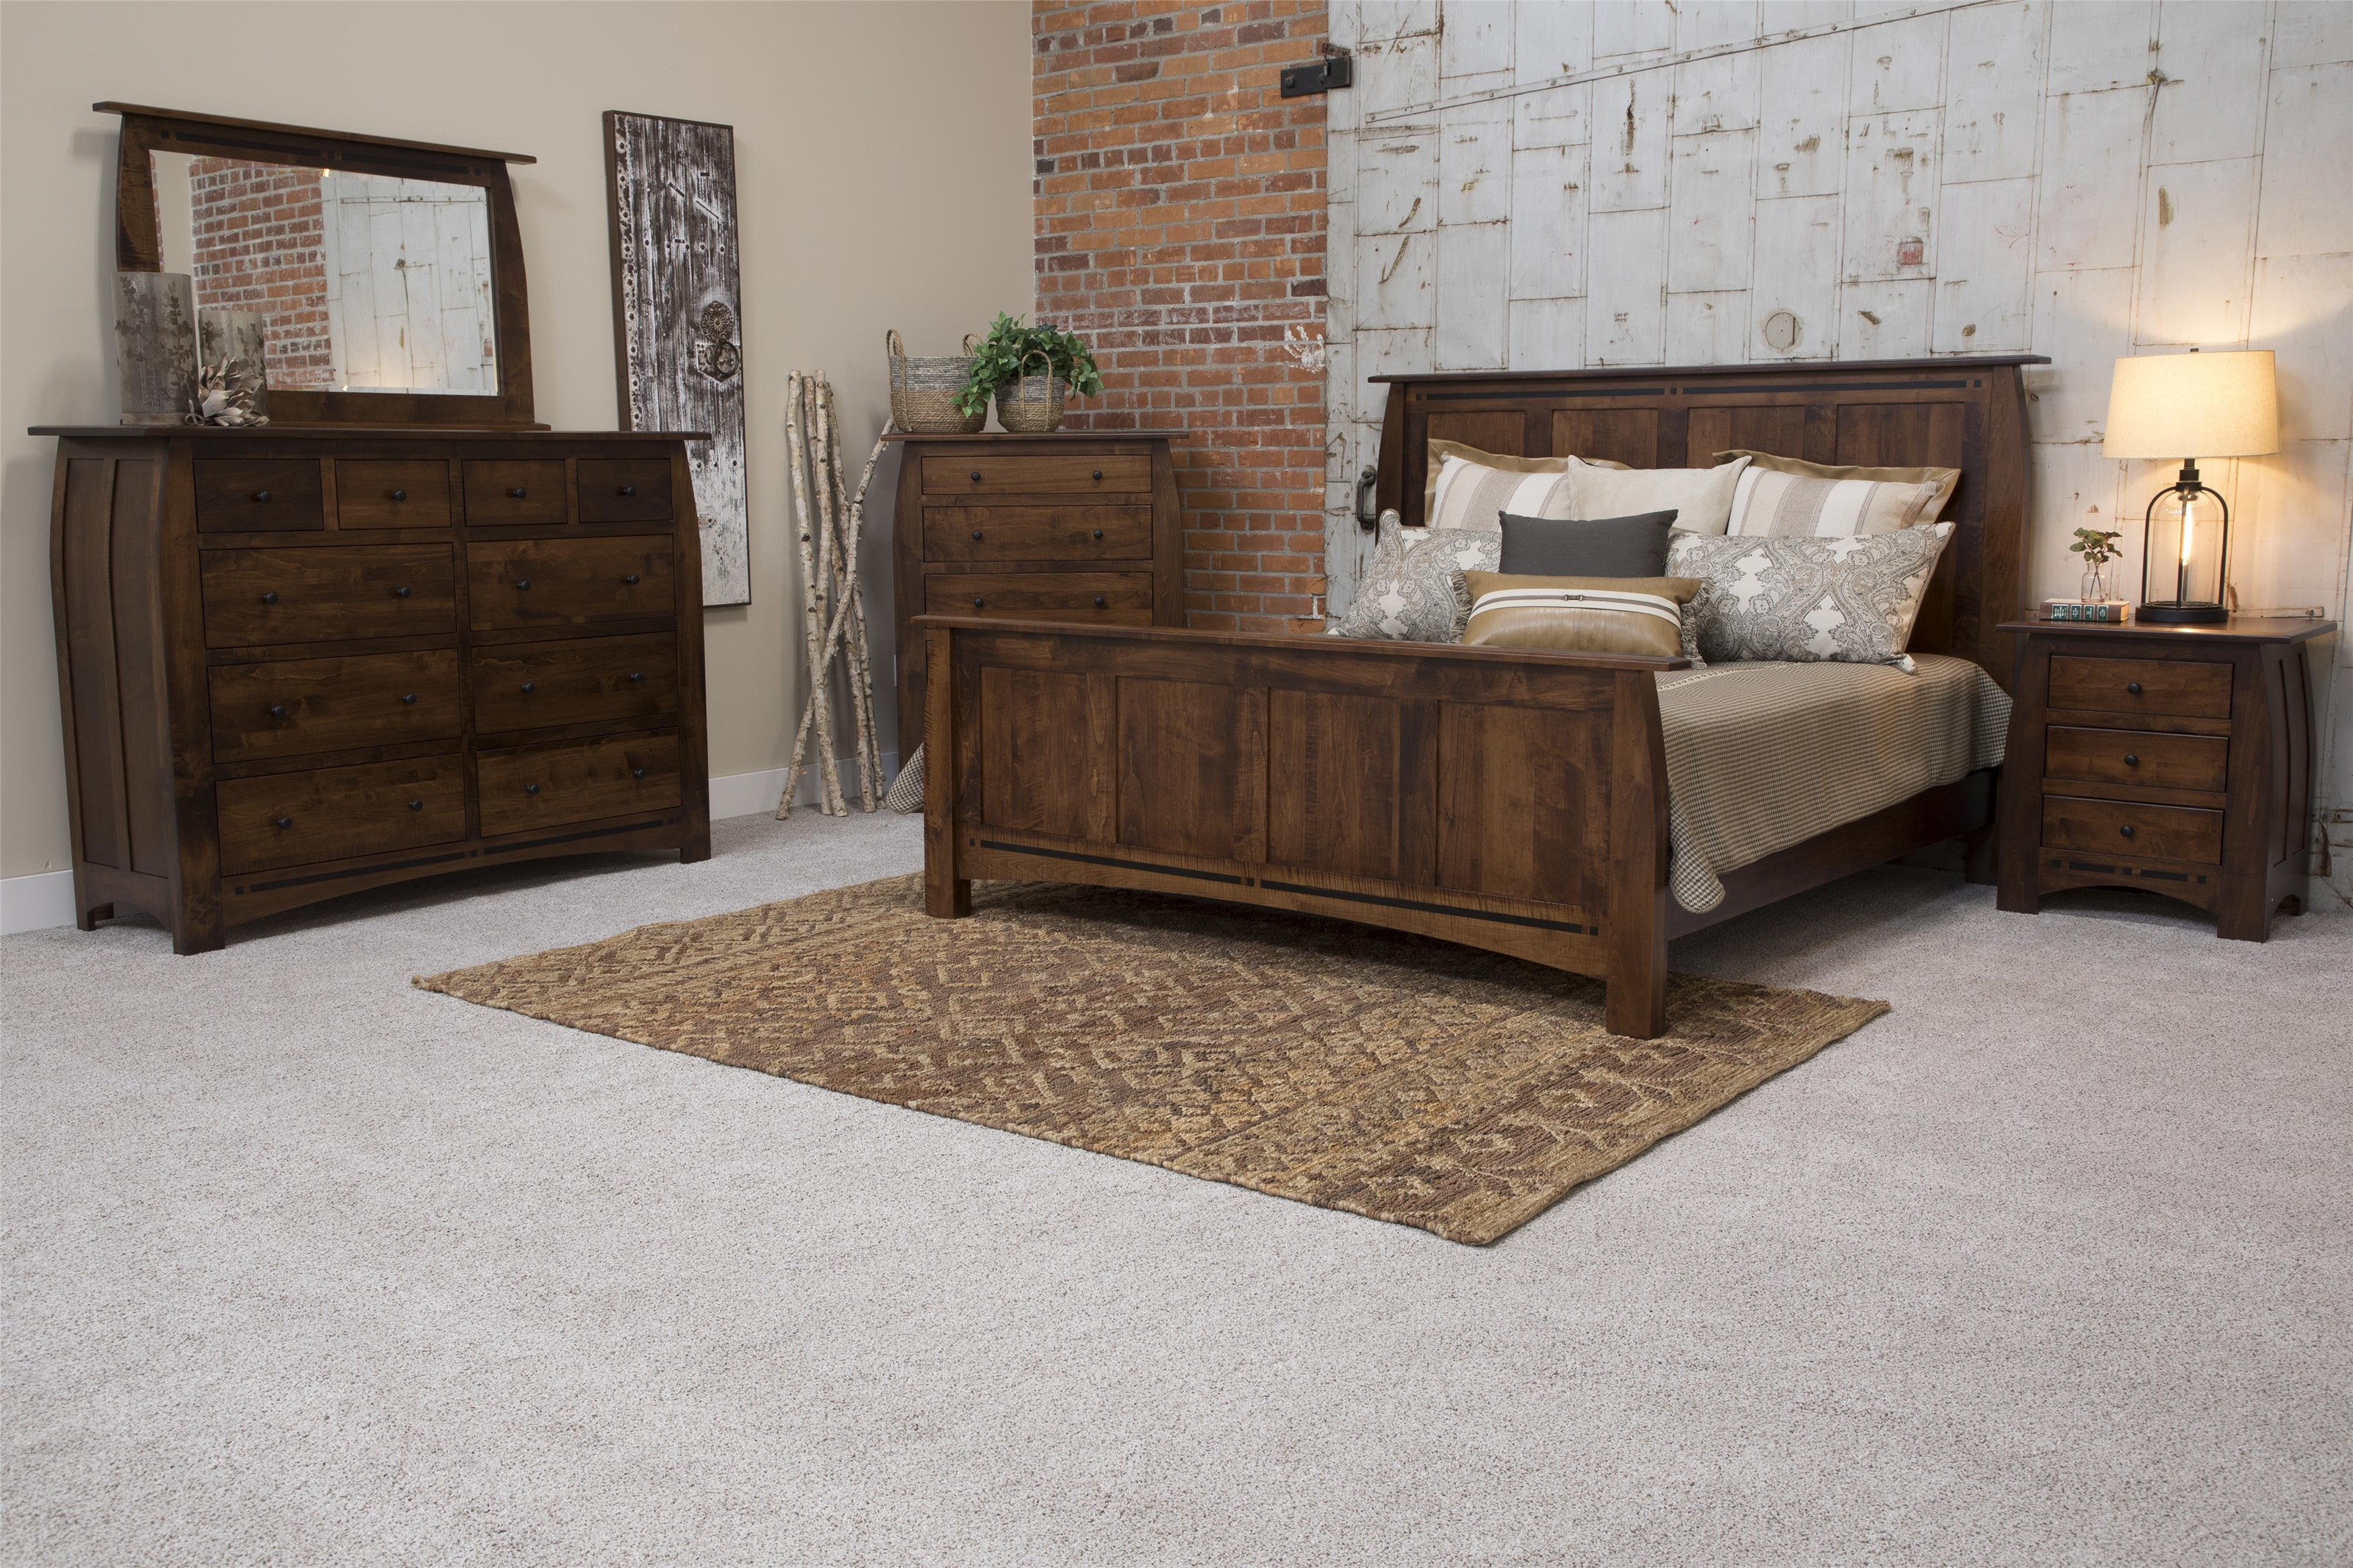 Clark 4 Piece Clark Amish Queen Bedroom Group by Indiana Amish at Walker's Furniture